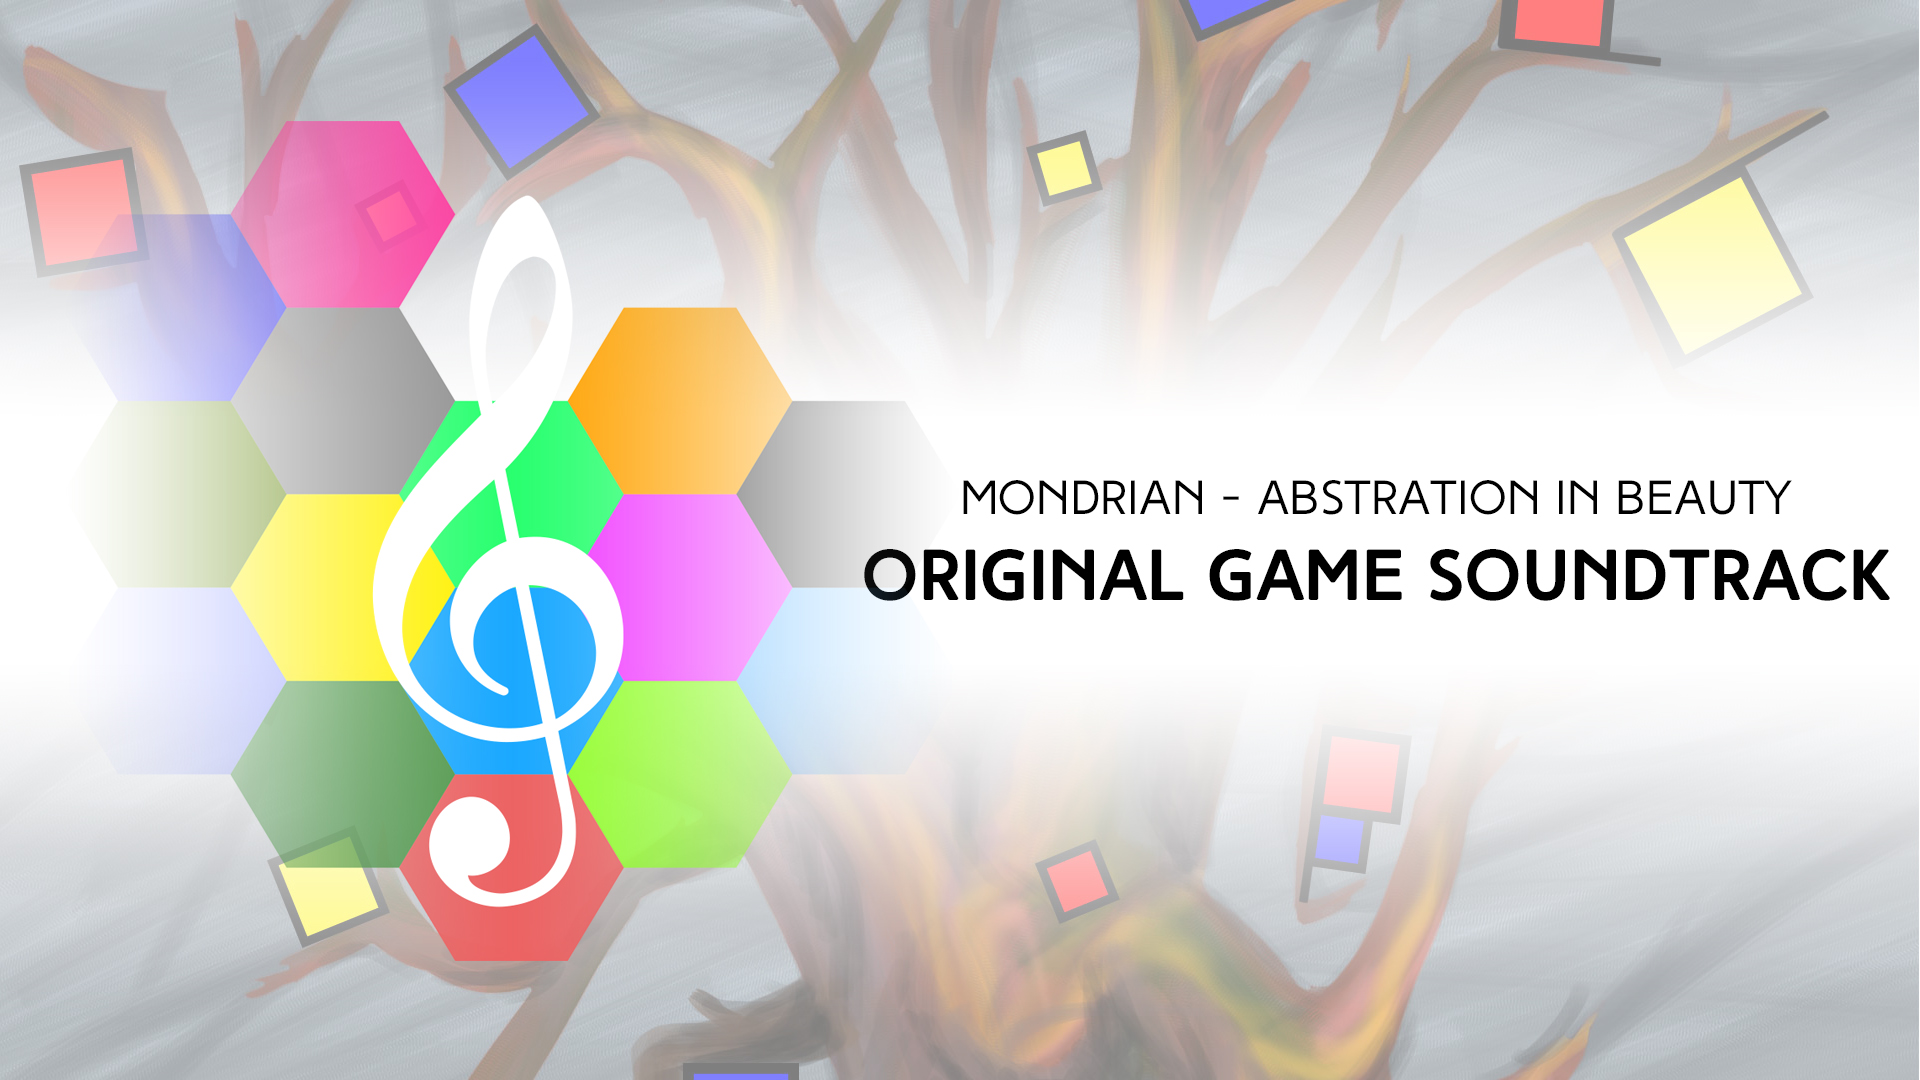 Mondrian - Abstraction in Beauty: Original Game Soundtrack screenshot